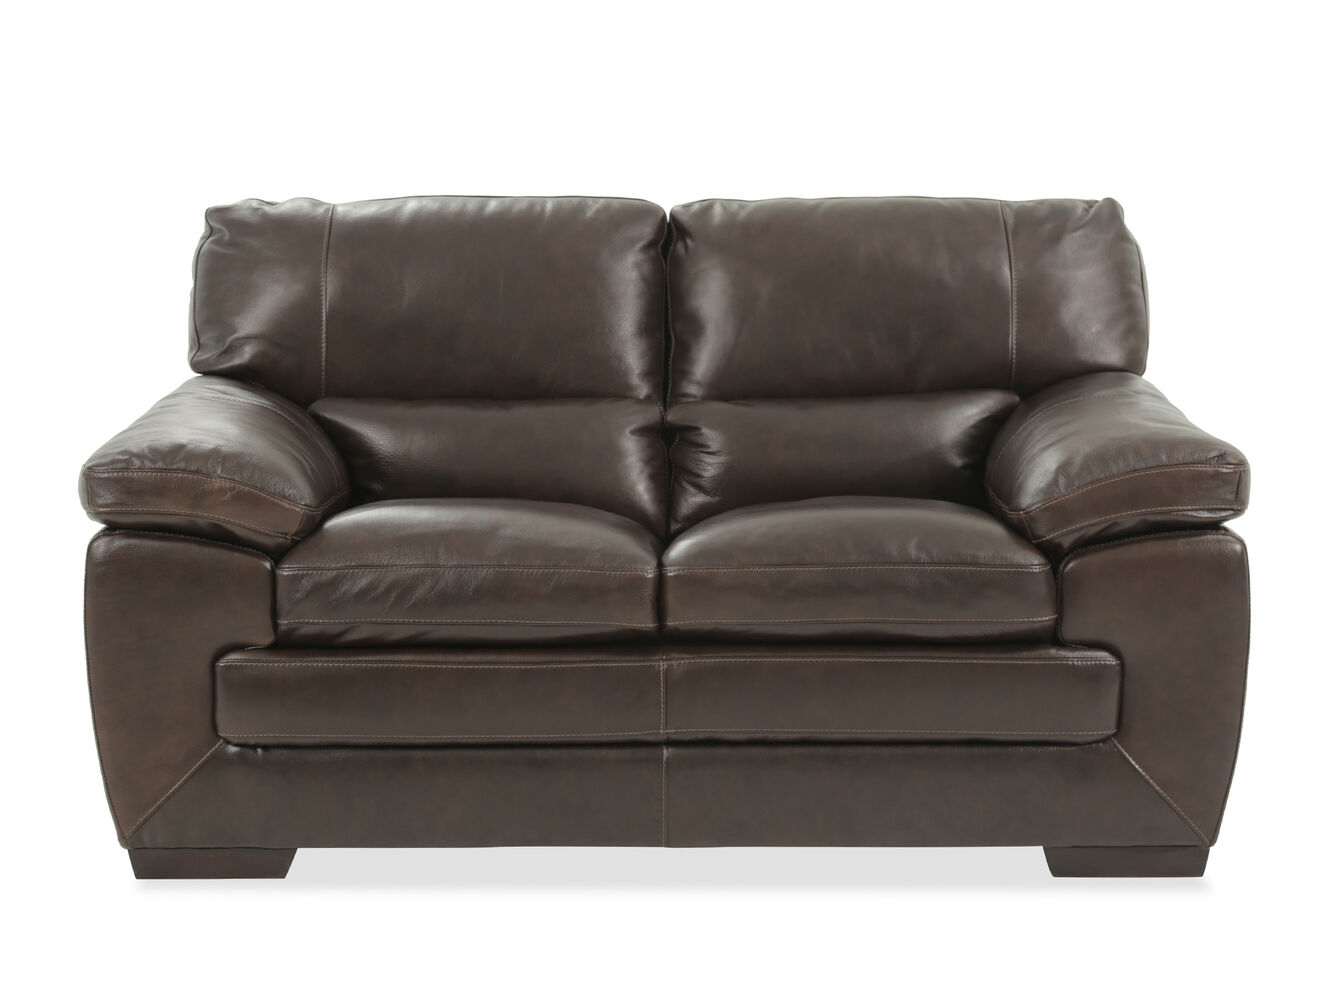 Simon Li Leather Longhorn Black Oak Loveseat Mathis Brothers Furniture